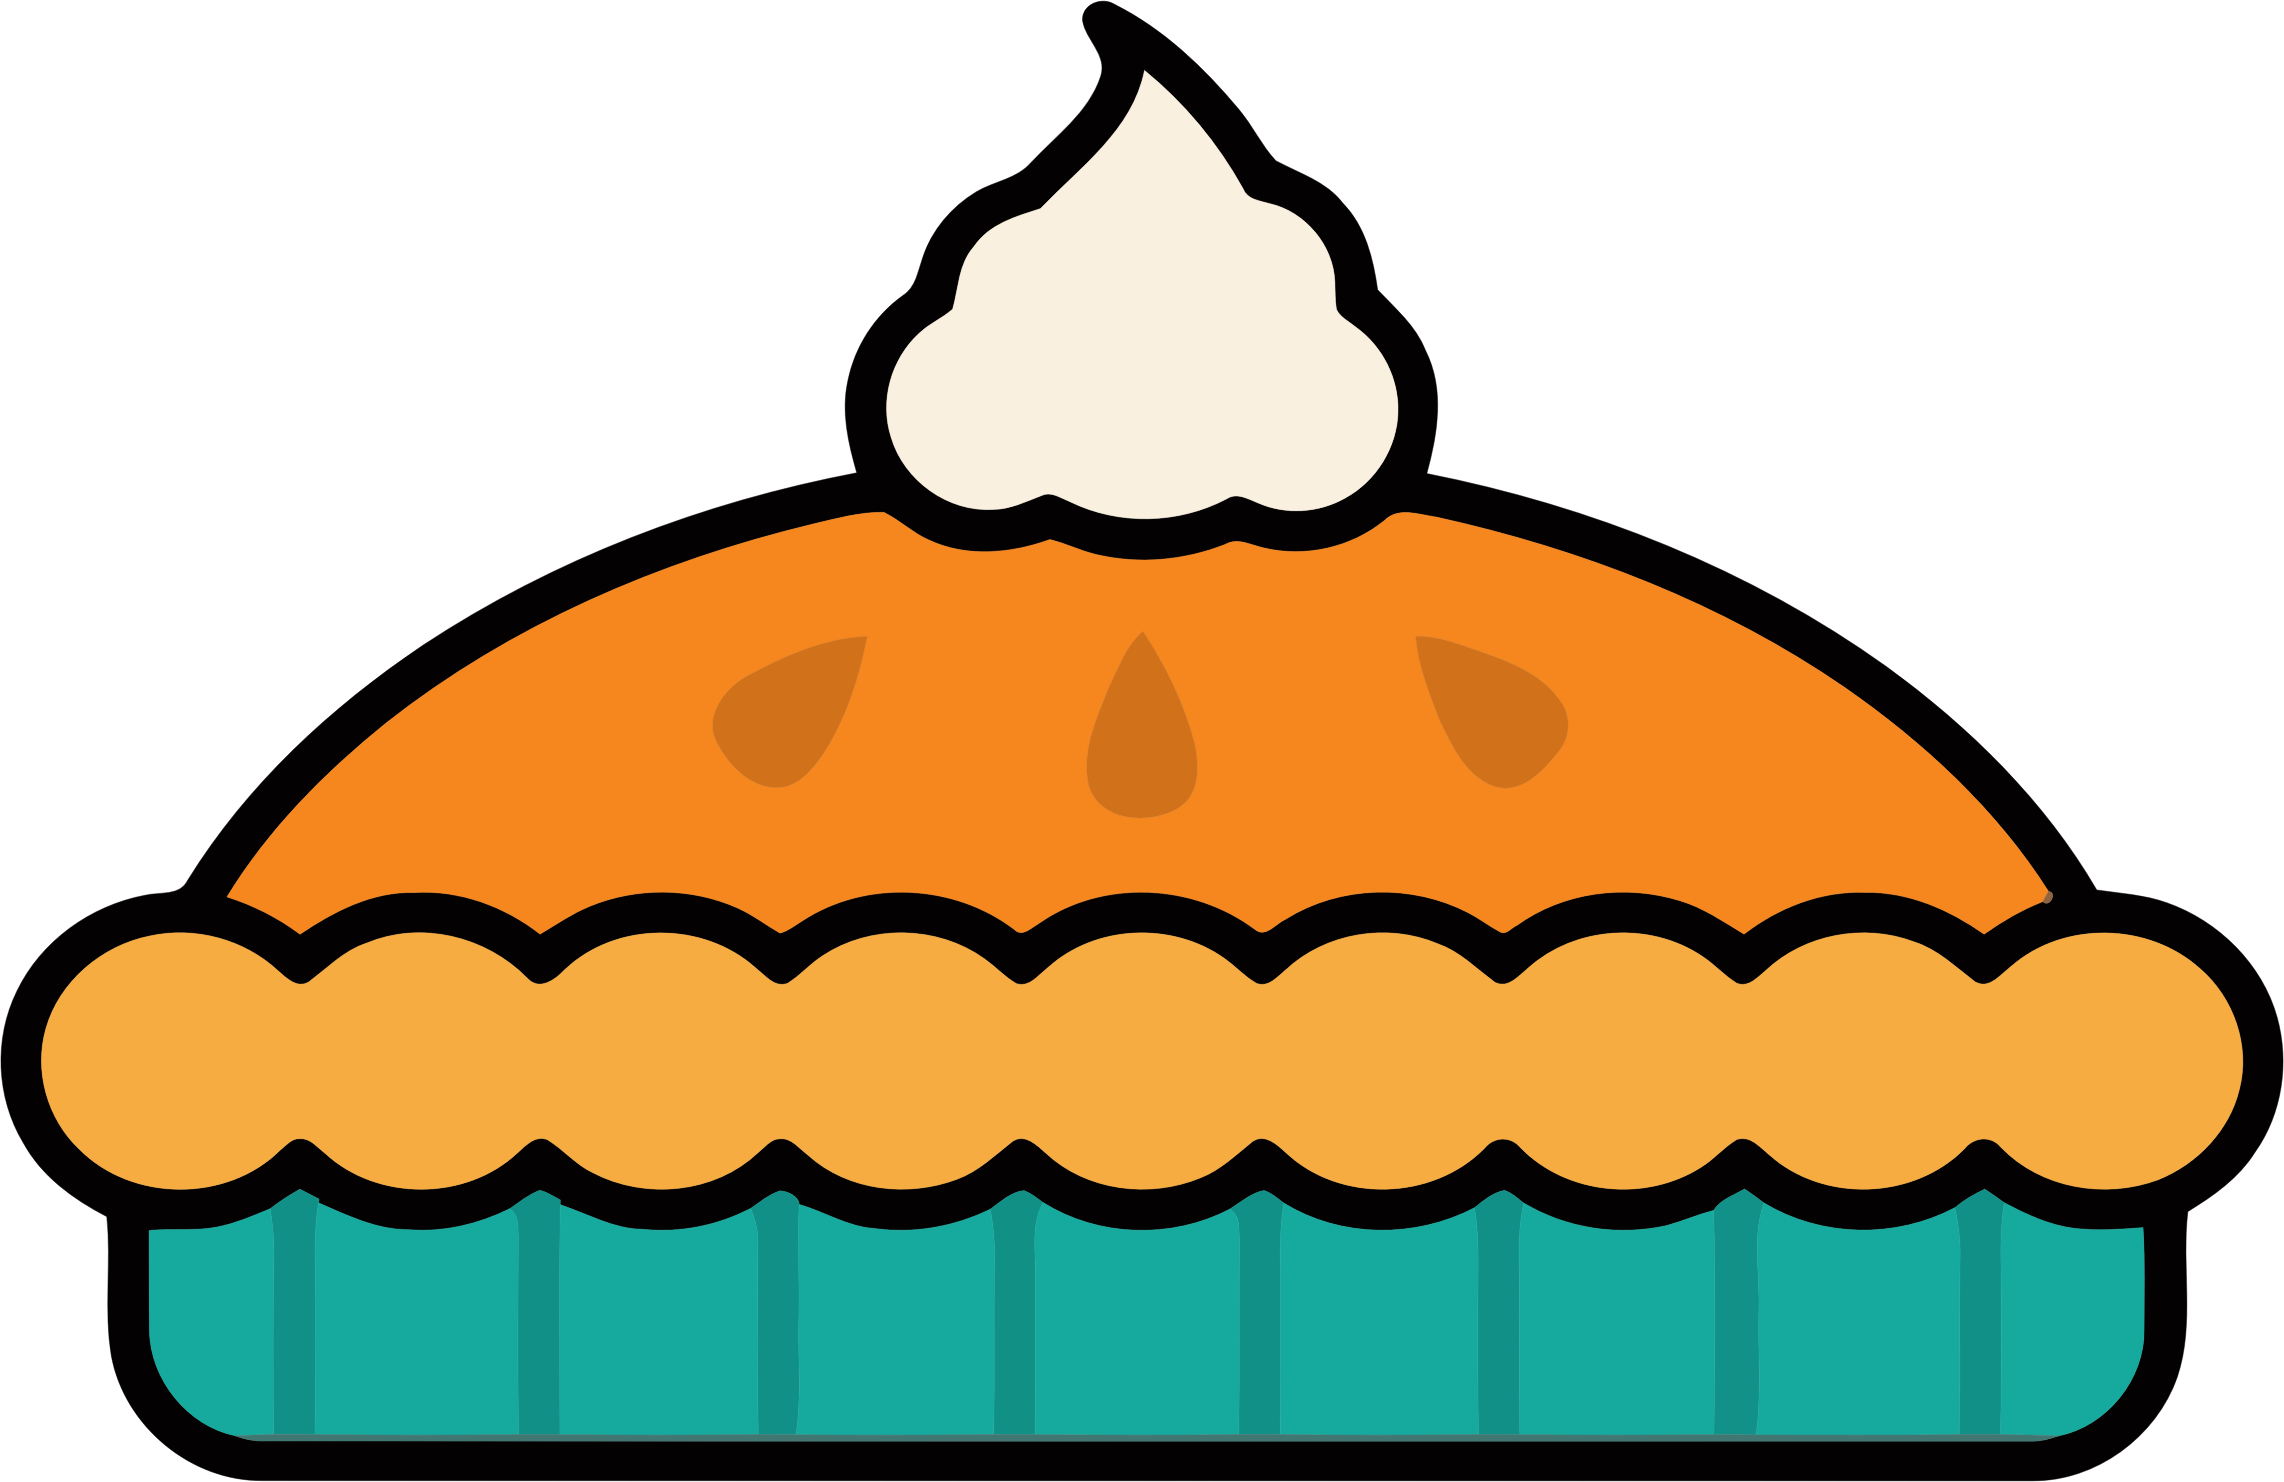 Pie clipart pumpkin pie, Pie pumpkin pie Transparent FREE.